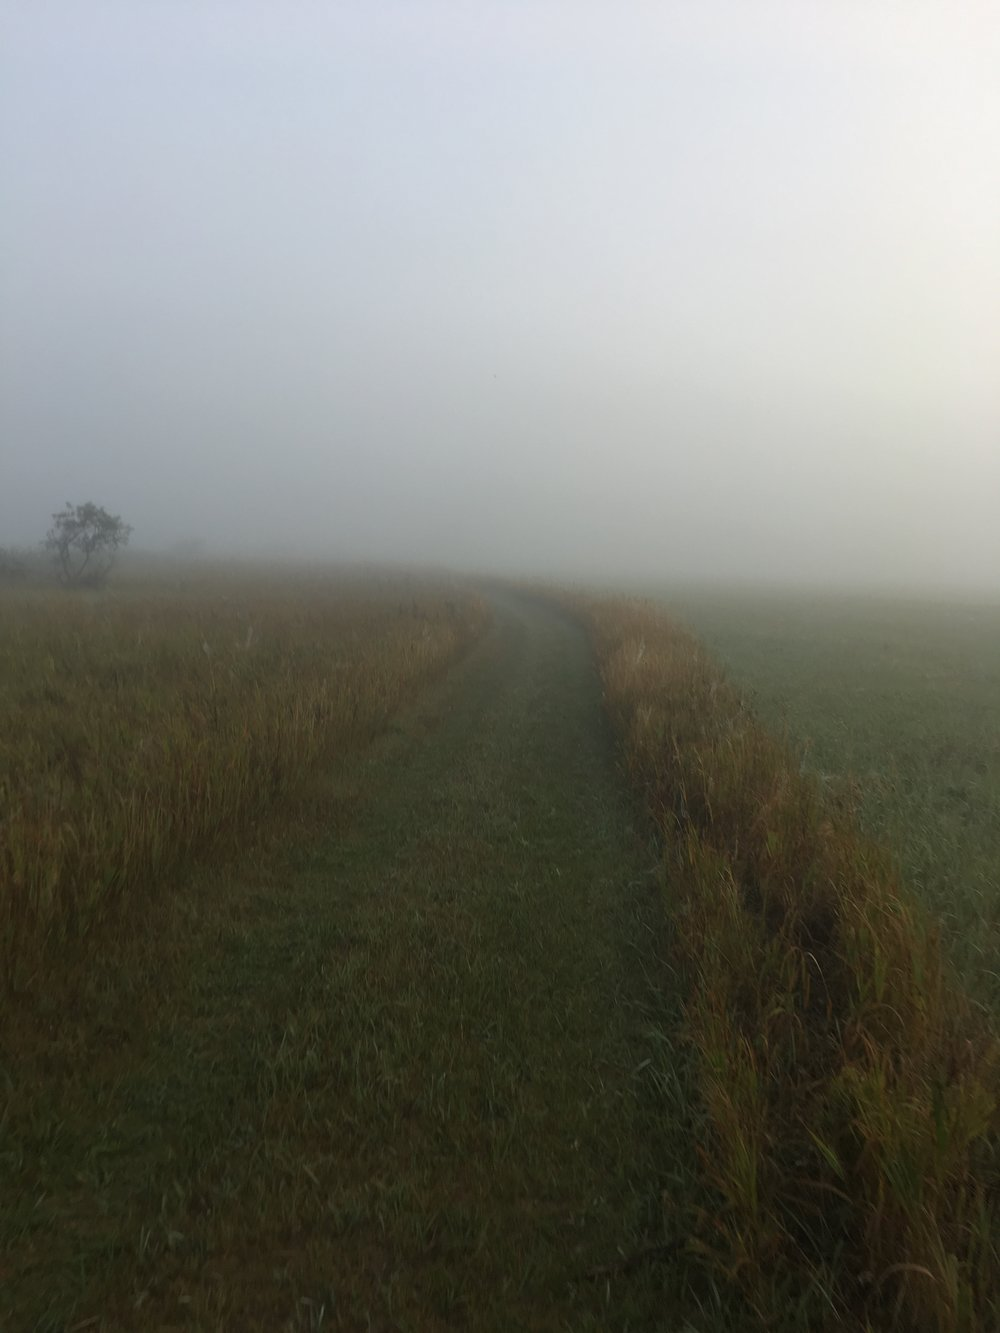 I absolutely loved this.  It was different running on the grass path with ruts here and there but it was so much fun and so different.  The fog and dew were so heavy that my shoes and socks were quickly soaked!!   Part of me was sad that I didn't get to see the sunrise and lake that I had been so excited to see, but yet other parts of me were SO GLAD that I couldn't see what was ahead of me at times....